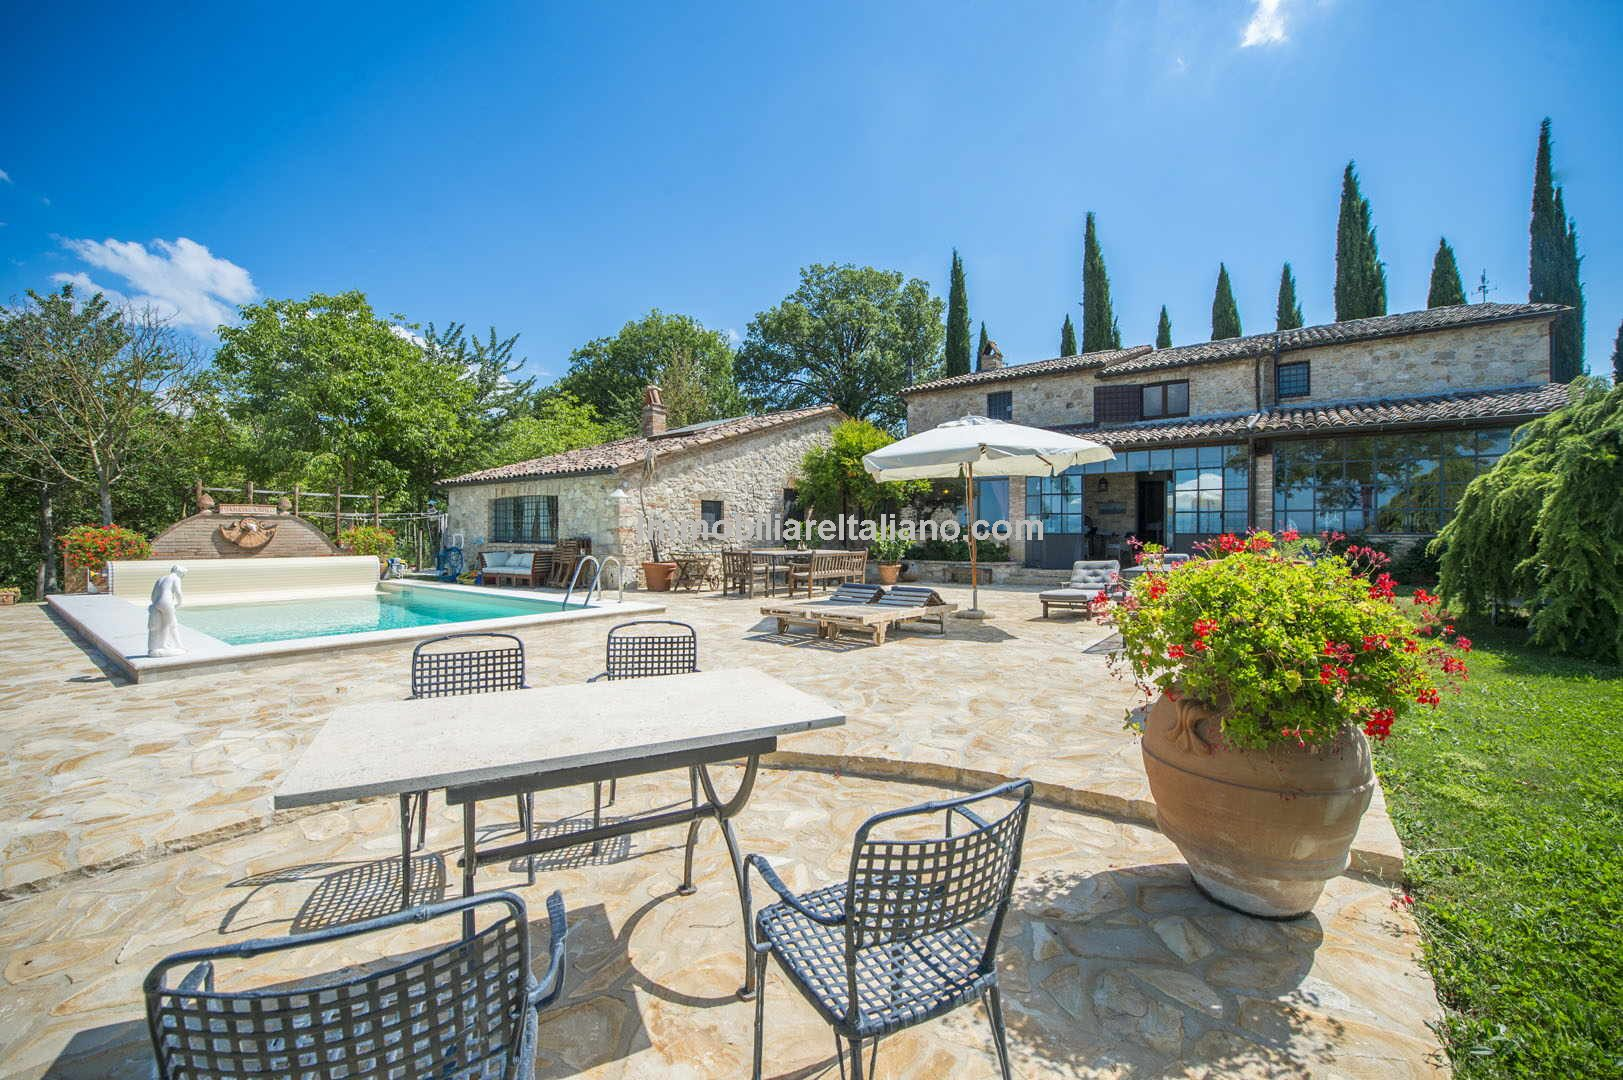 Large Italian home with pool, ideal for family year-round use, holiday home, rentals or small B&B. Near to Todi in Umbria